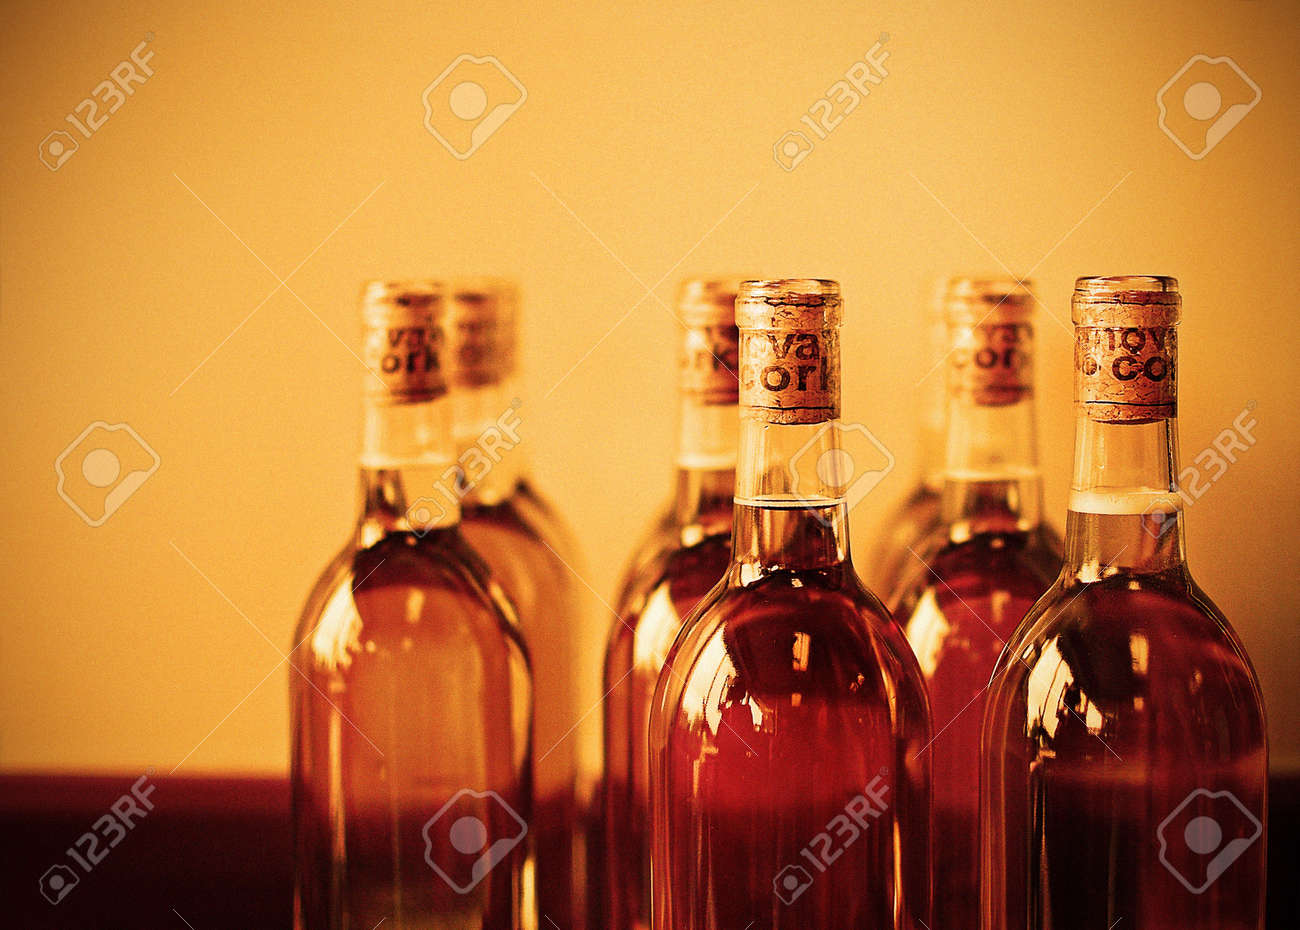 An image of several bottles of wine - 11645996